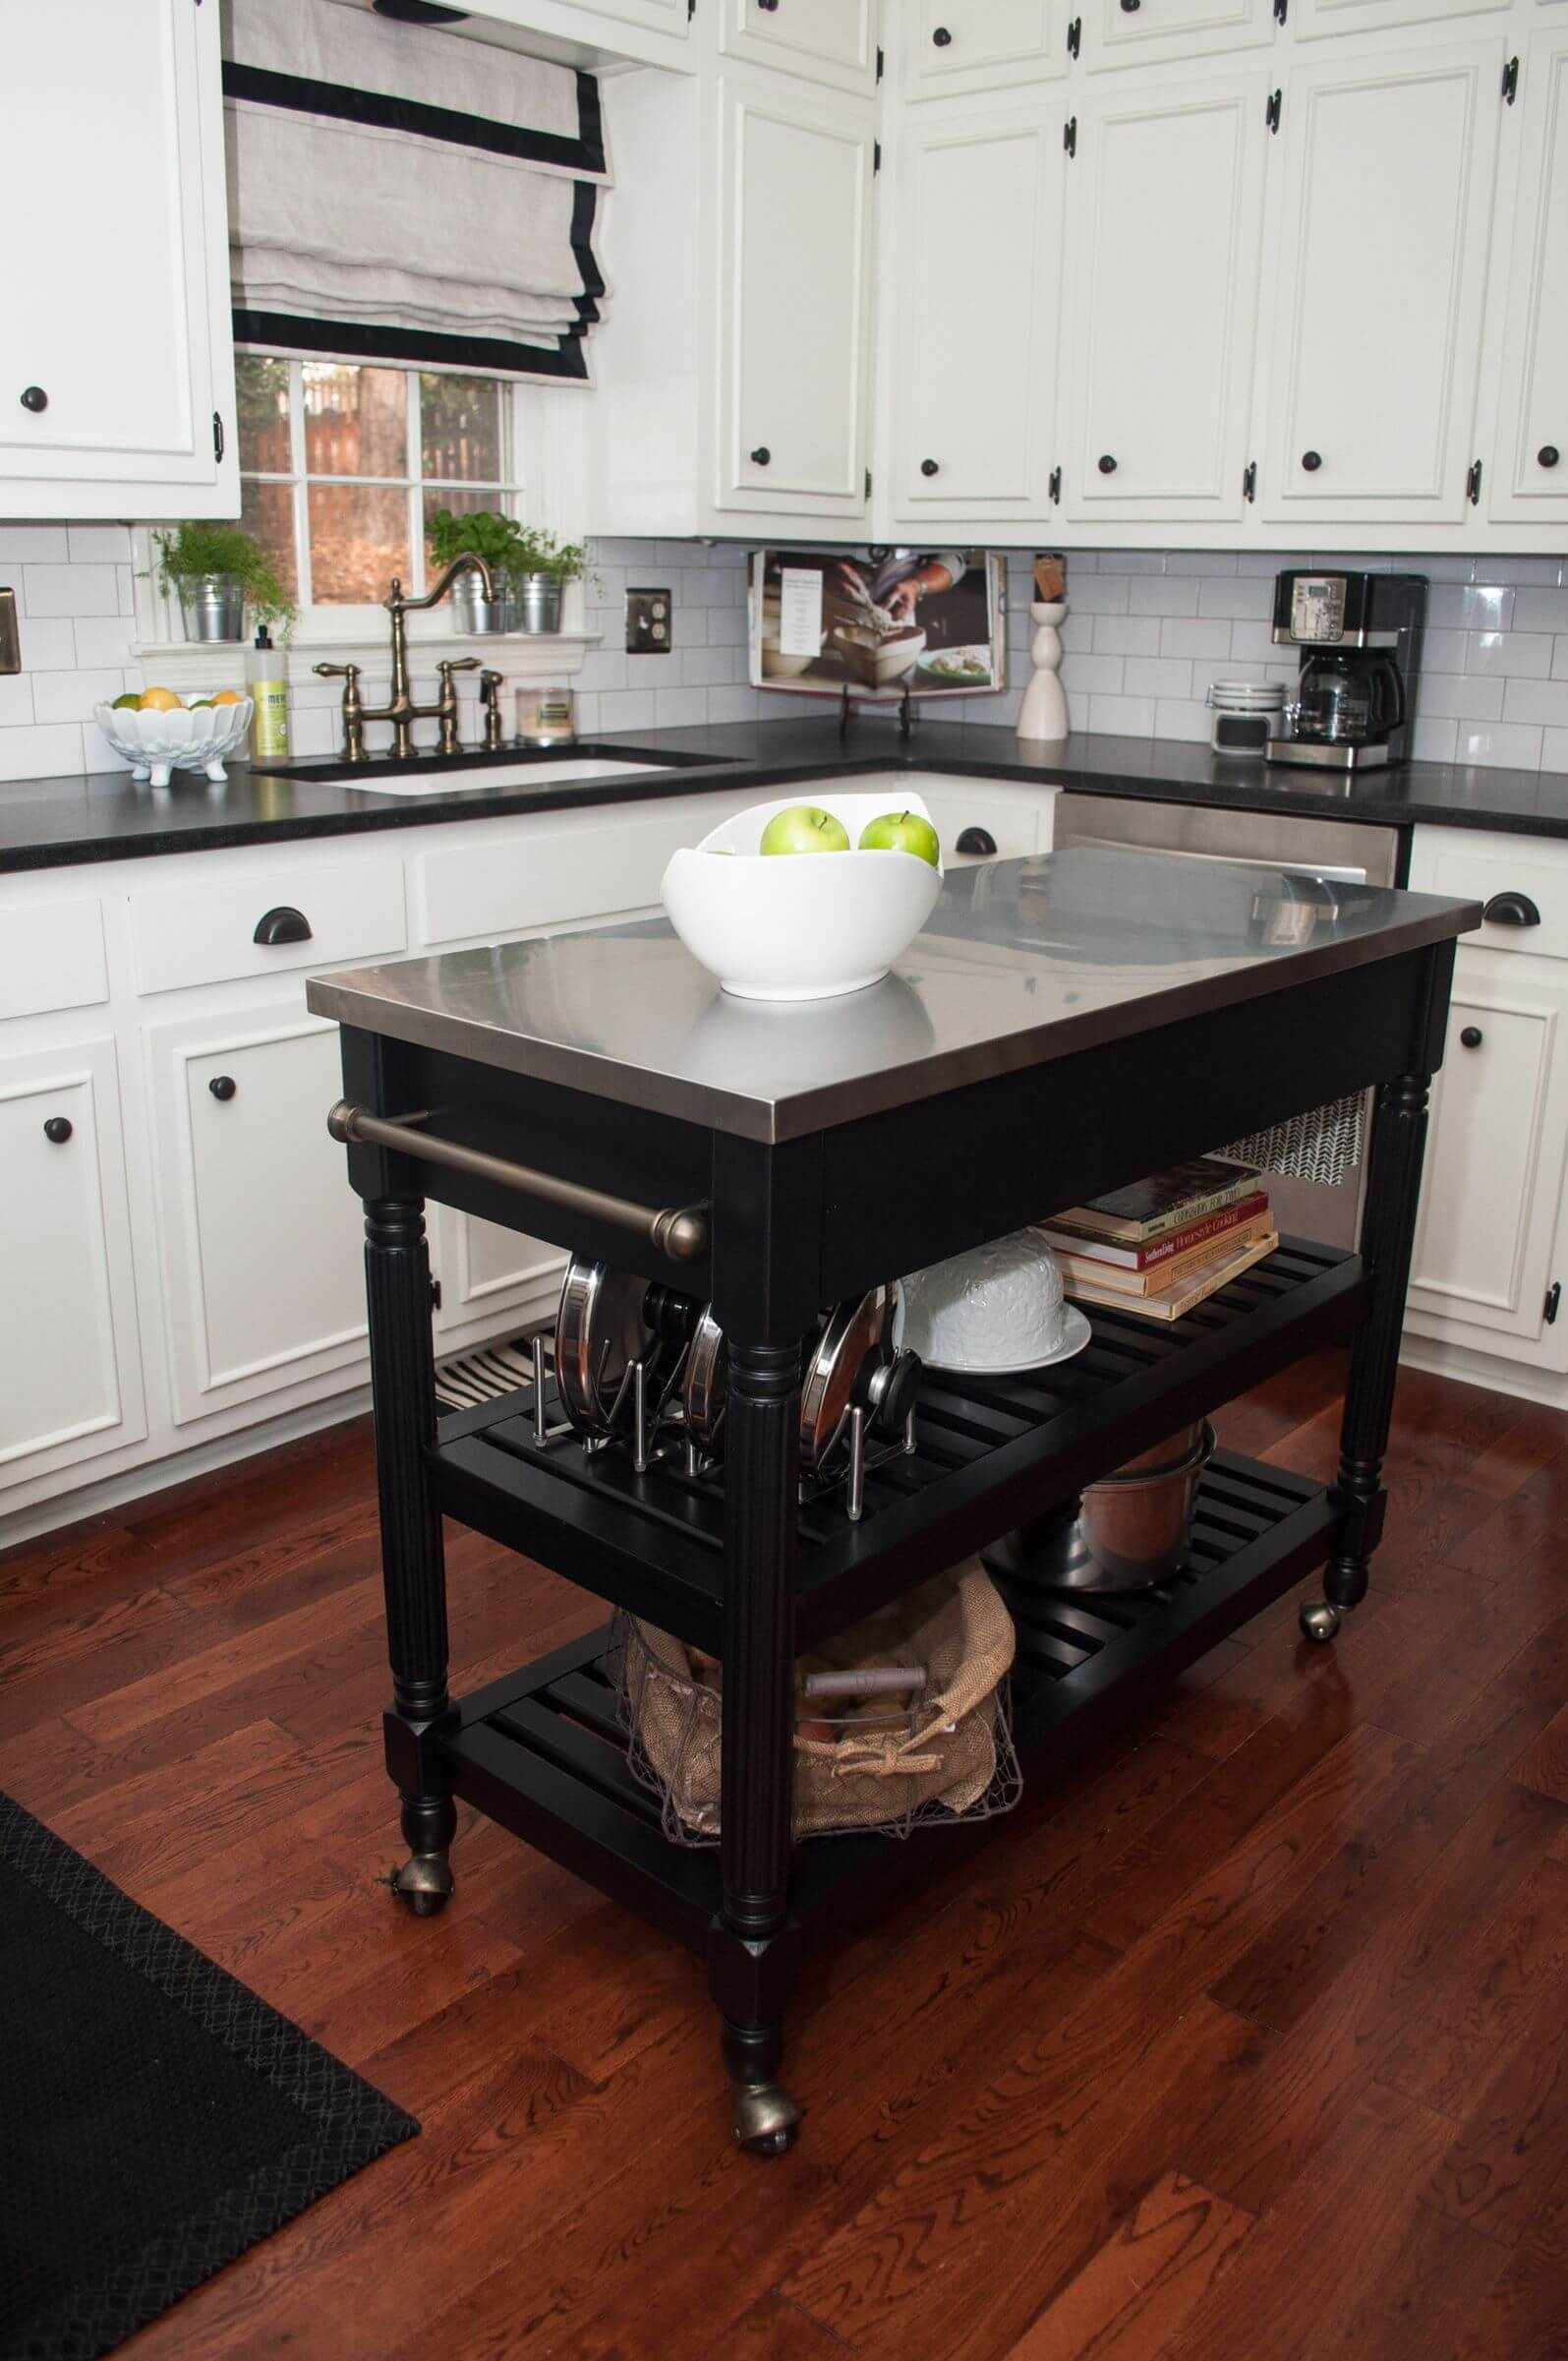 10 Types of Small Kitchen Islands on Wheels | Portable kitchen ...